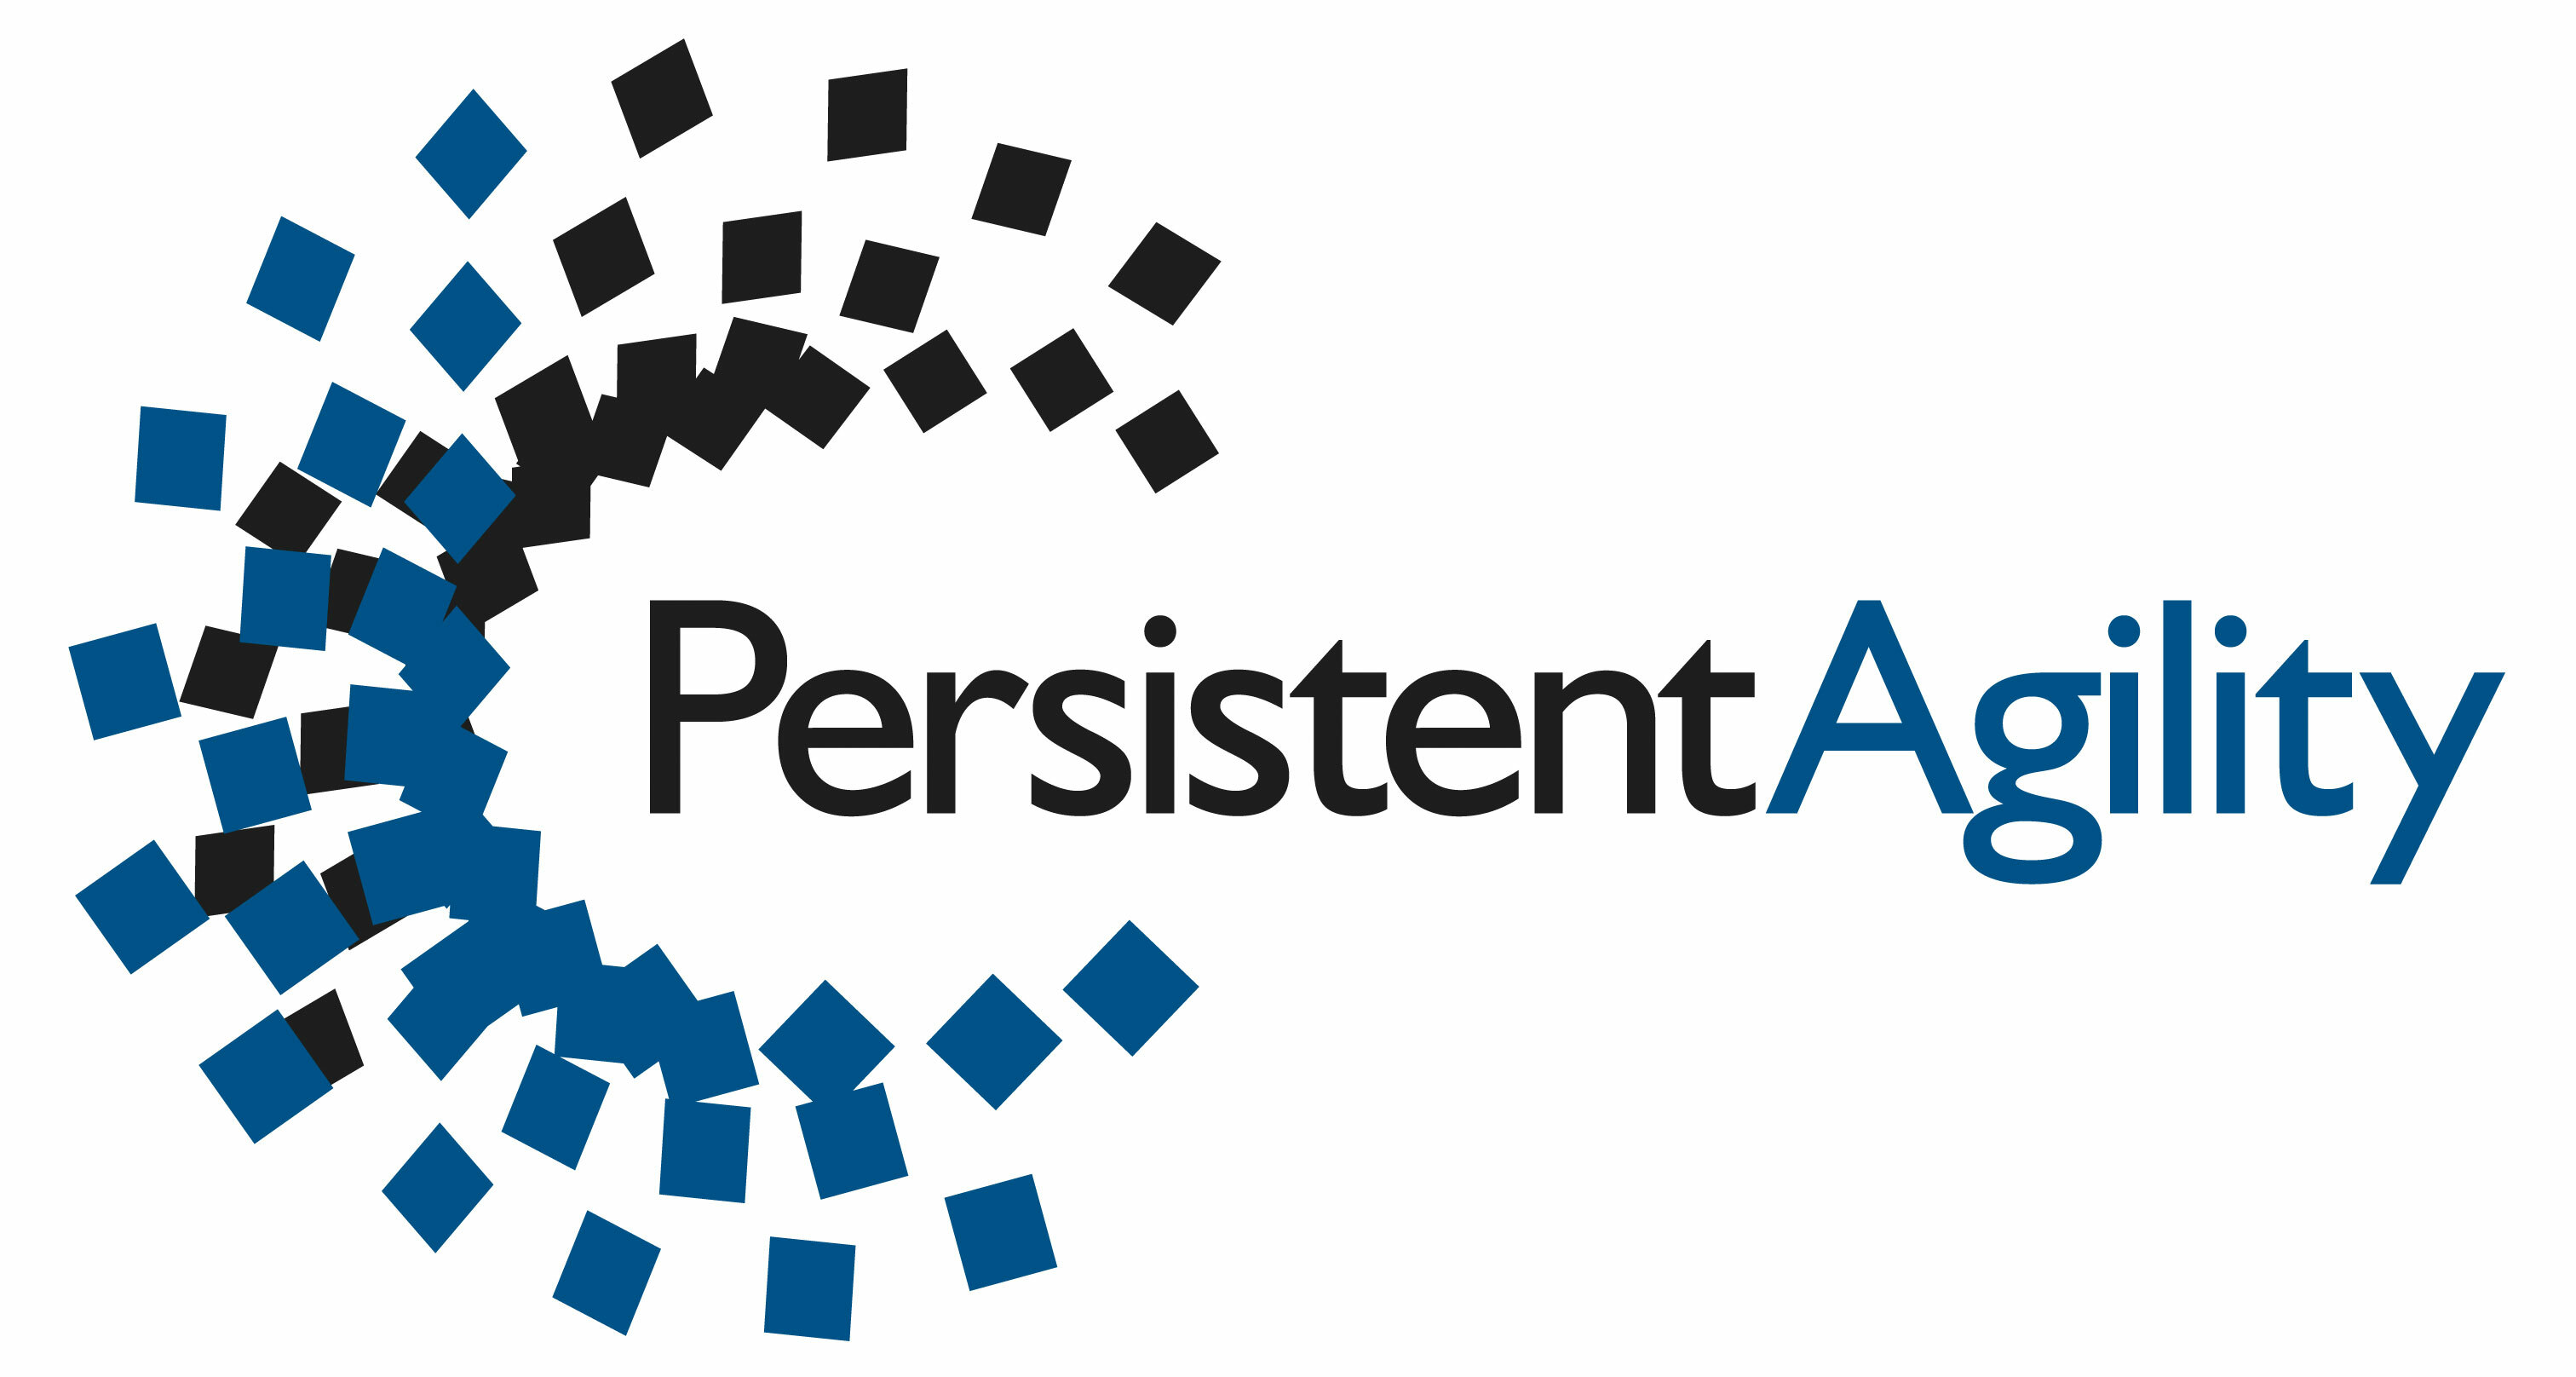 Persistent Agility